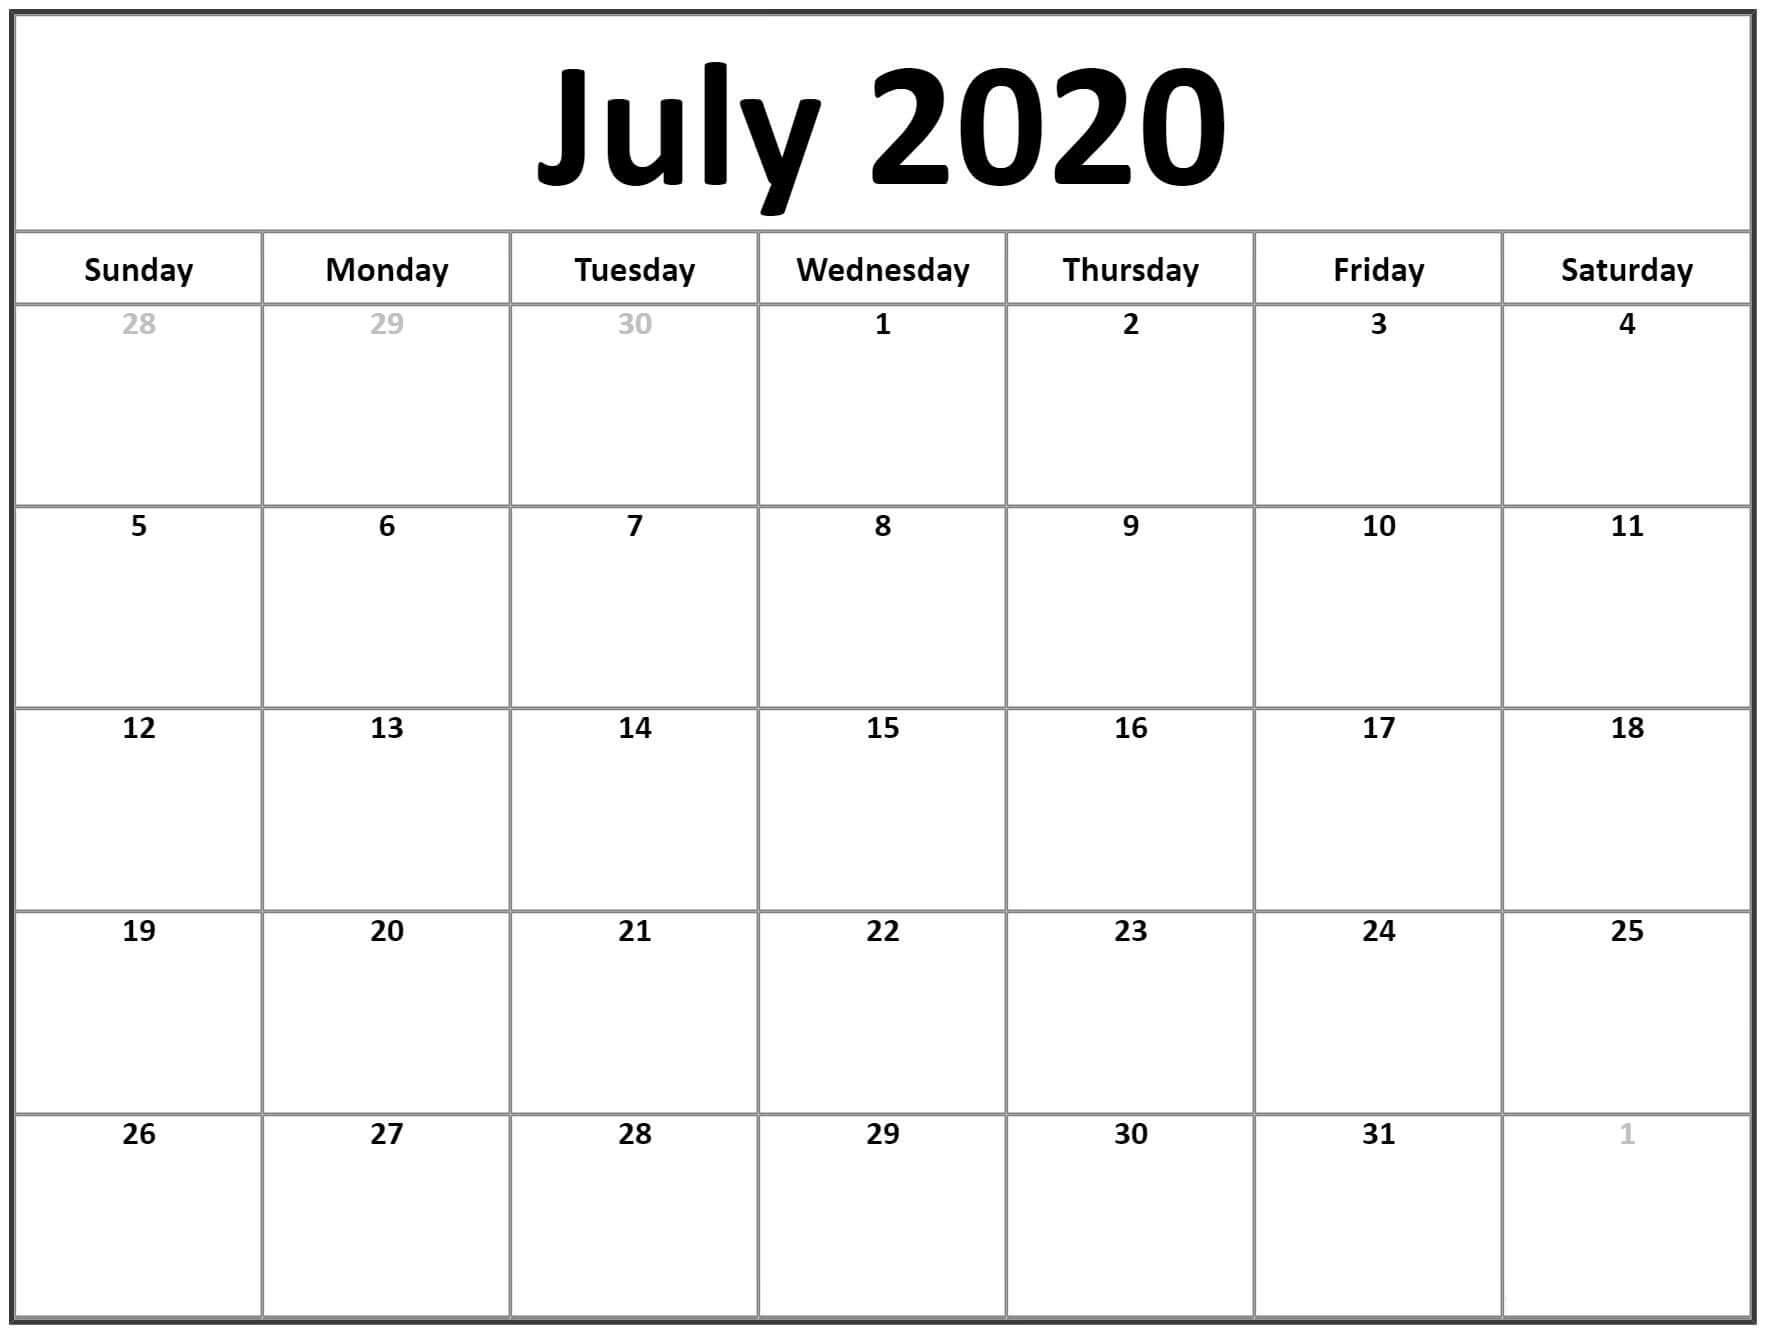 Calendar For July 2020 Template free